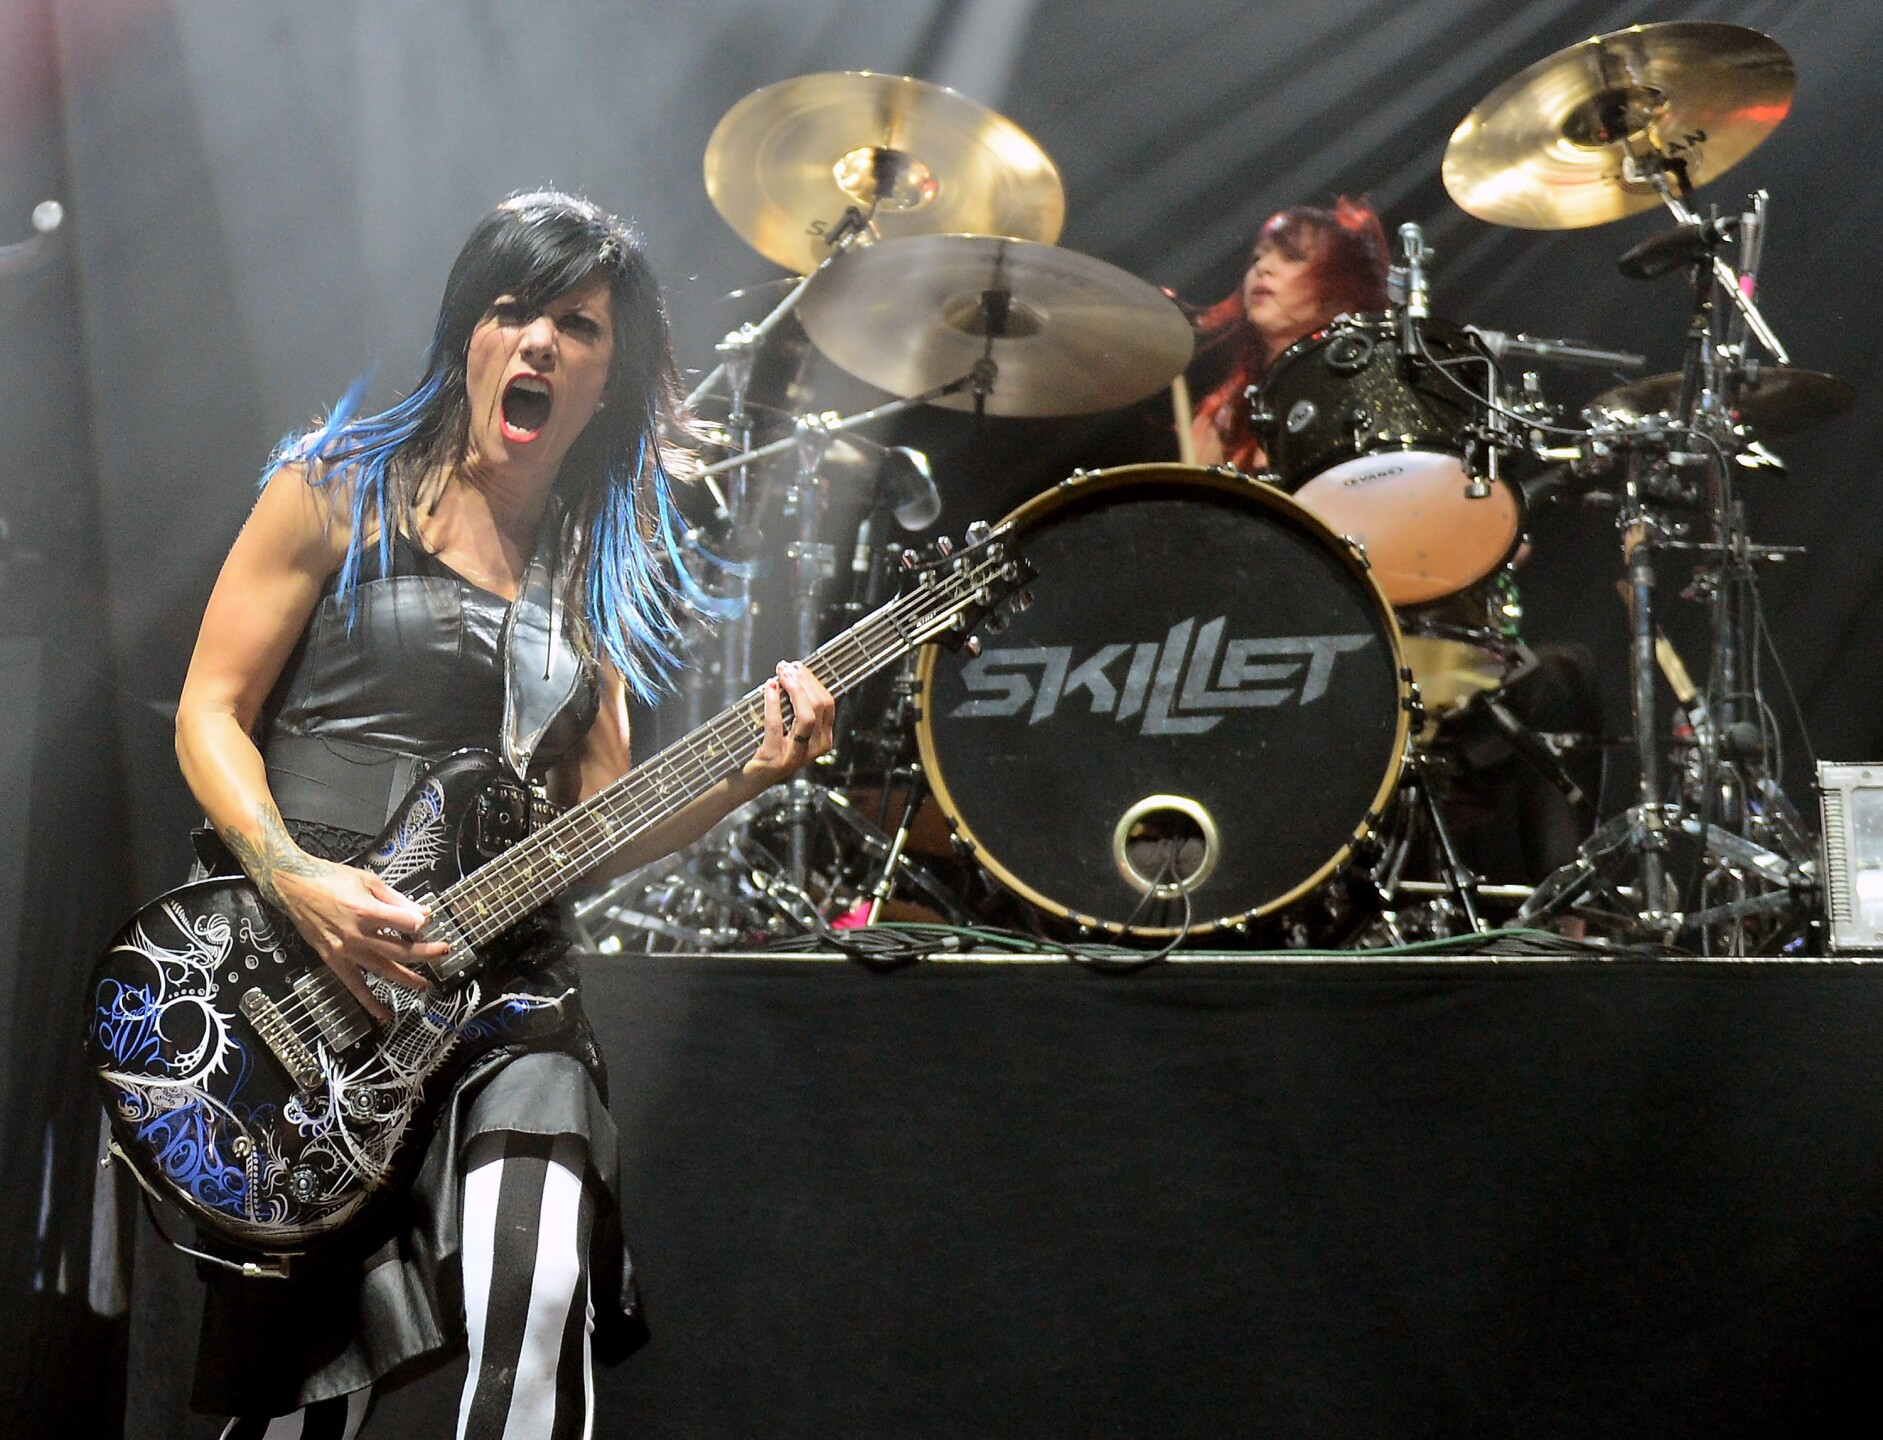 Skillet to perform at Summerfest 2019.